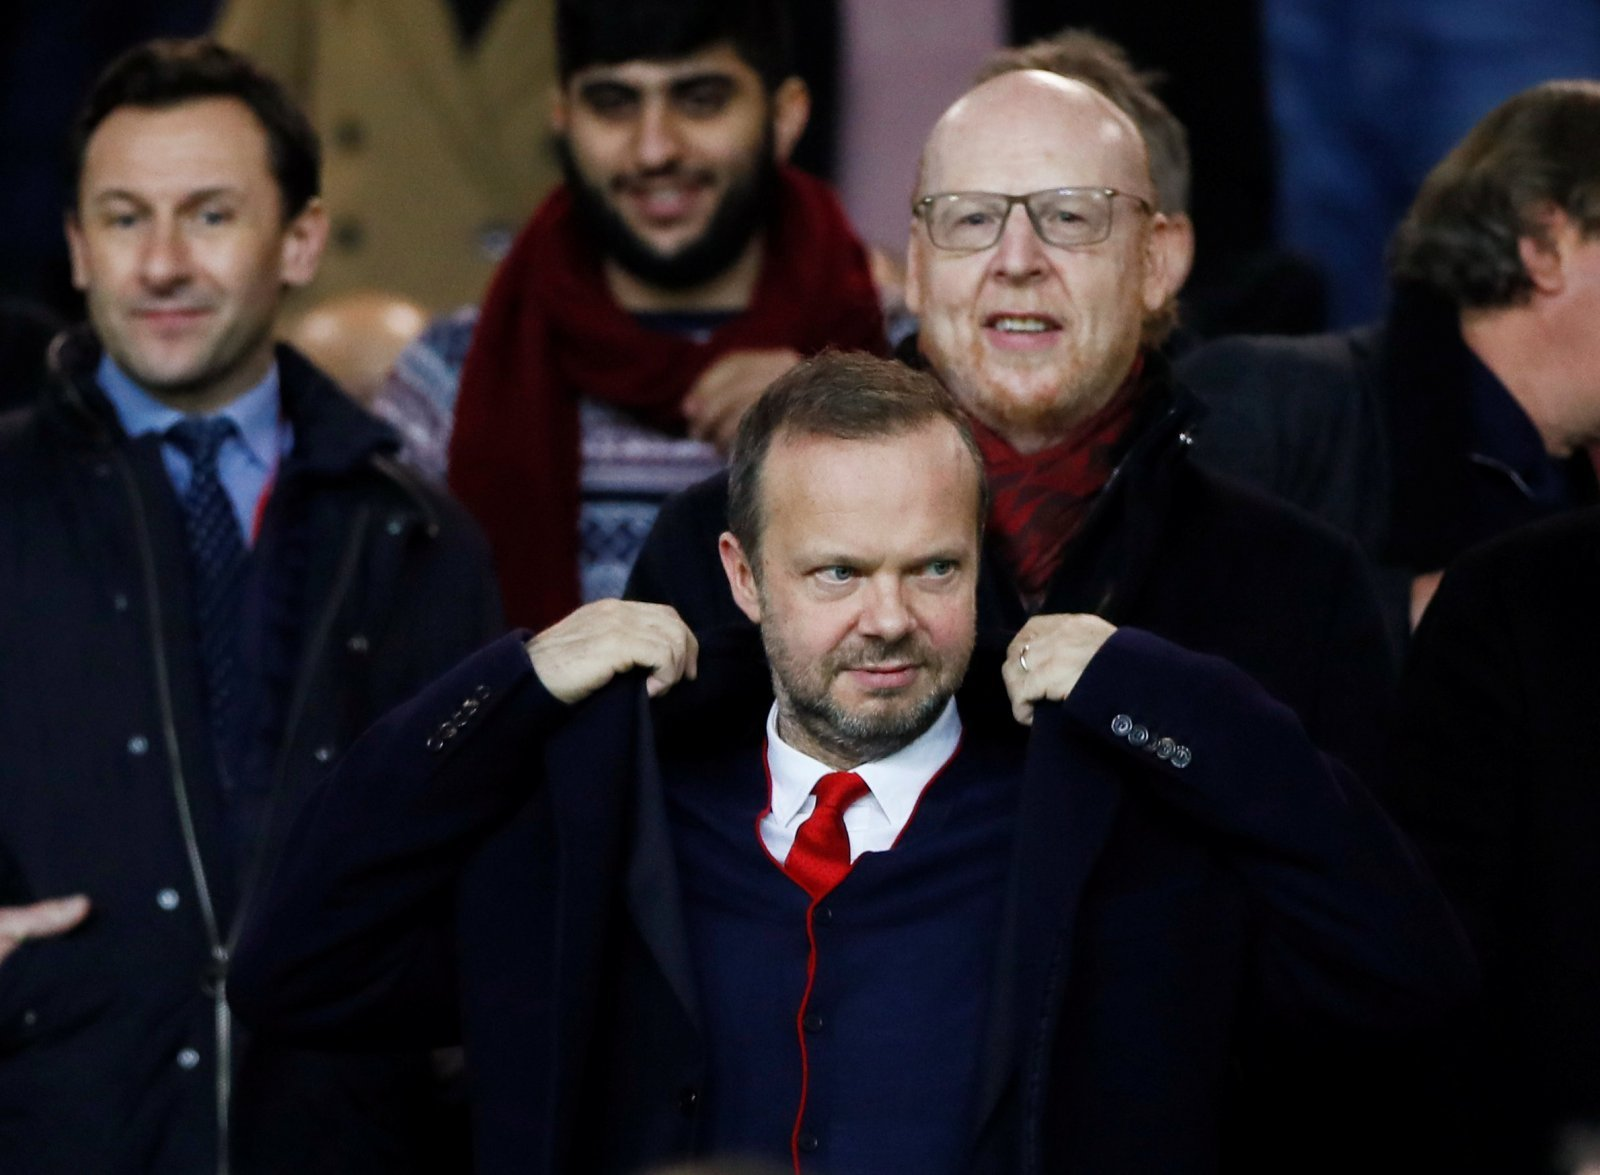 Manchester United: Ed Woodward is up to no good